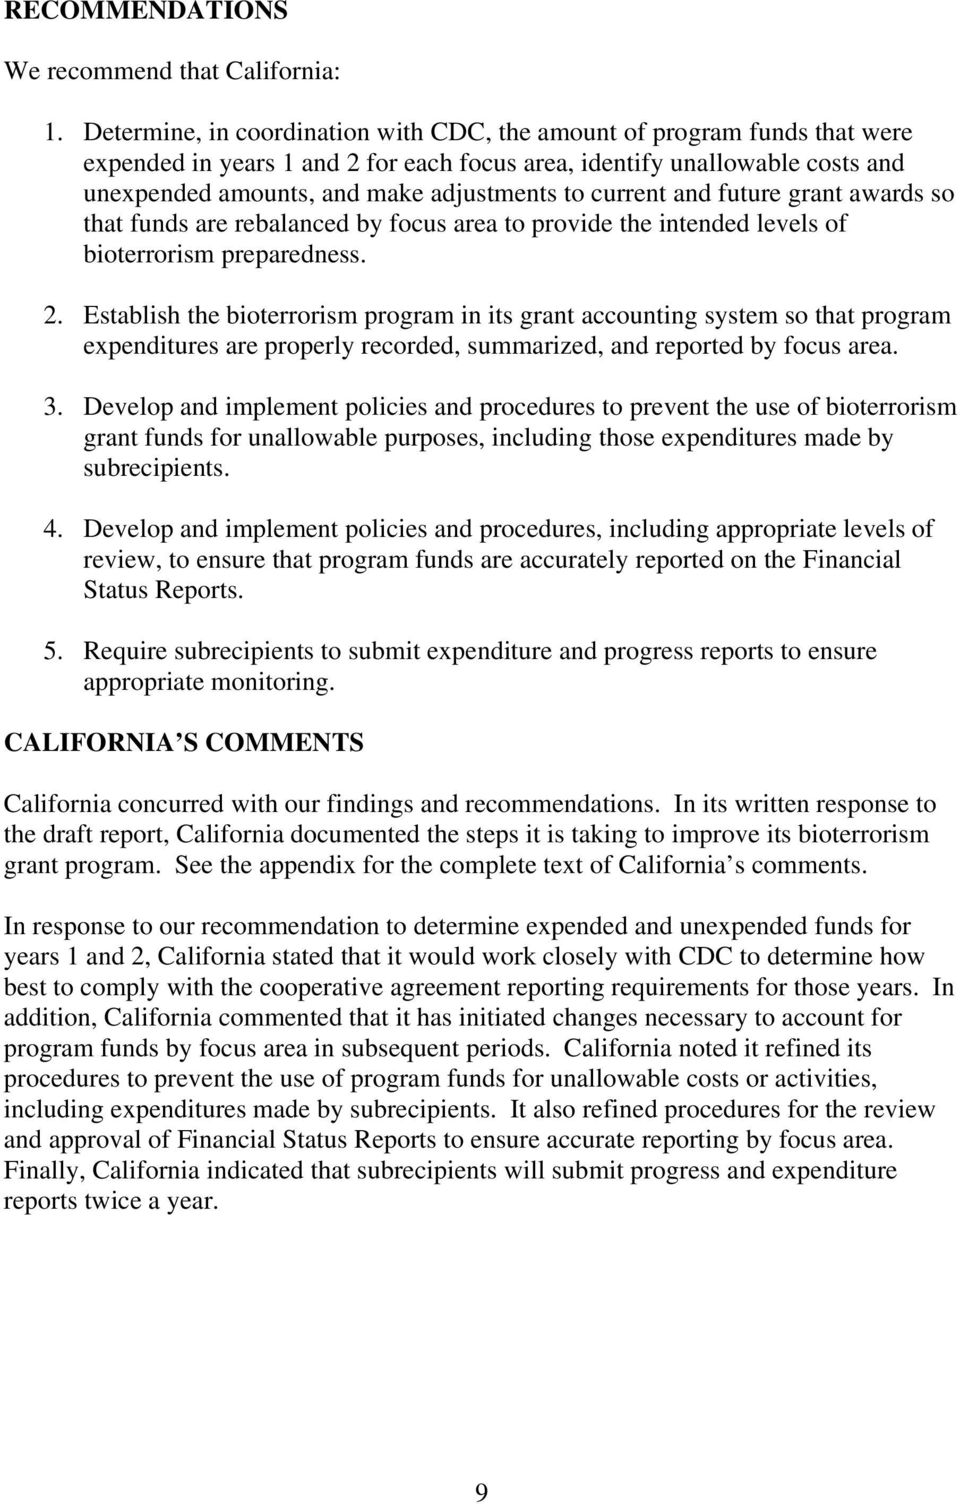 current and future grant awards so that funds are rebalanced by focus area to provide the intended levels of bioterrorism preparedness. 2.